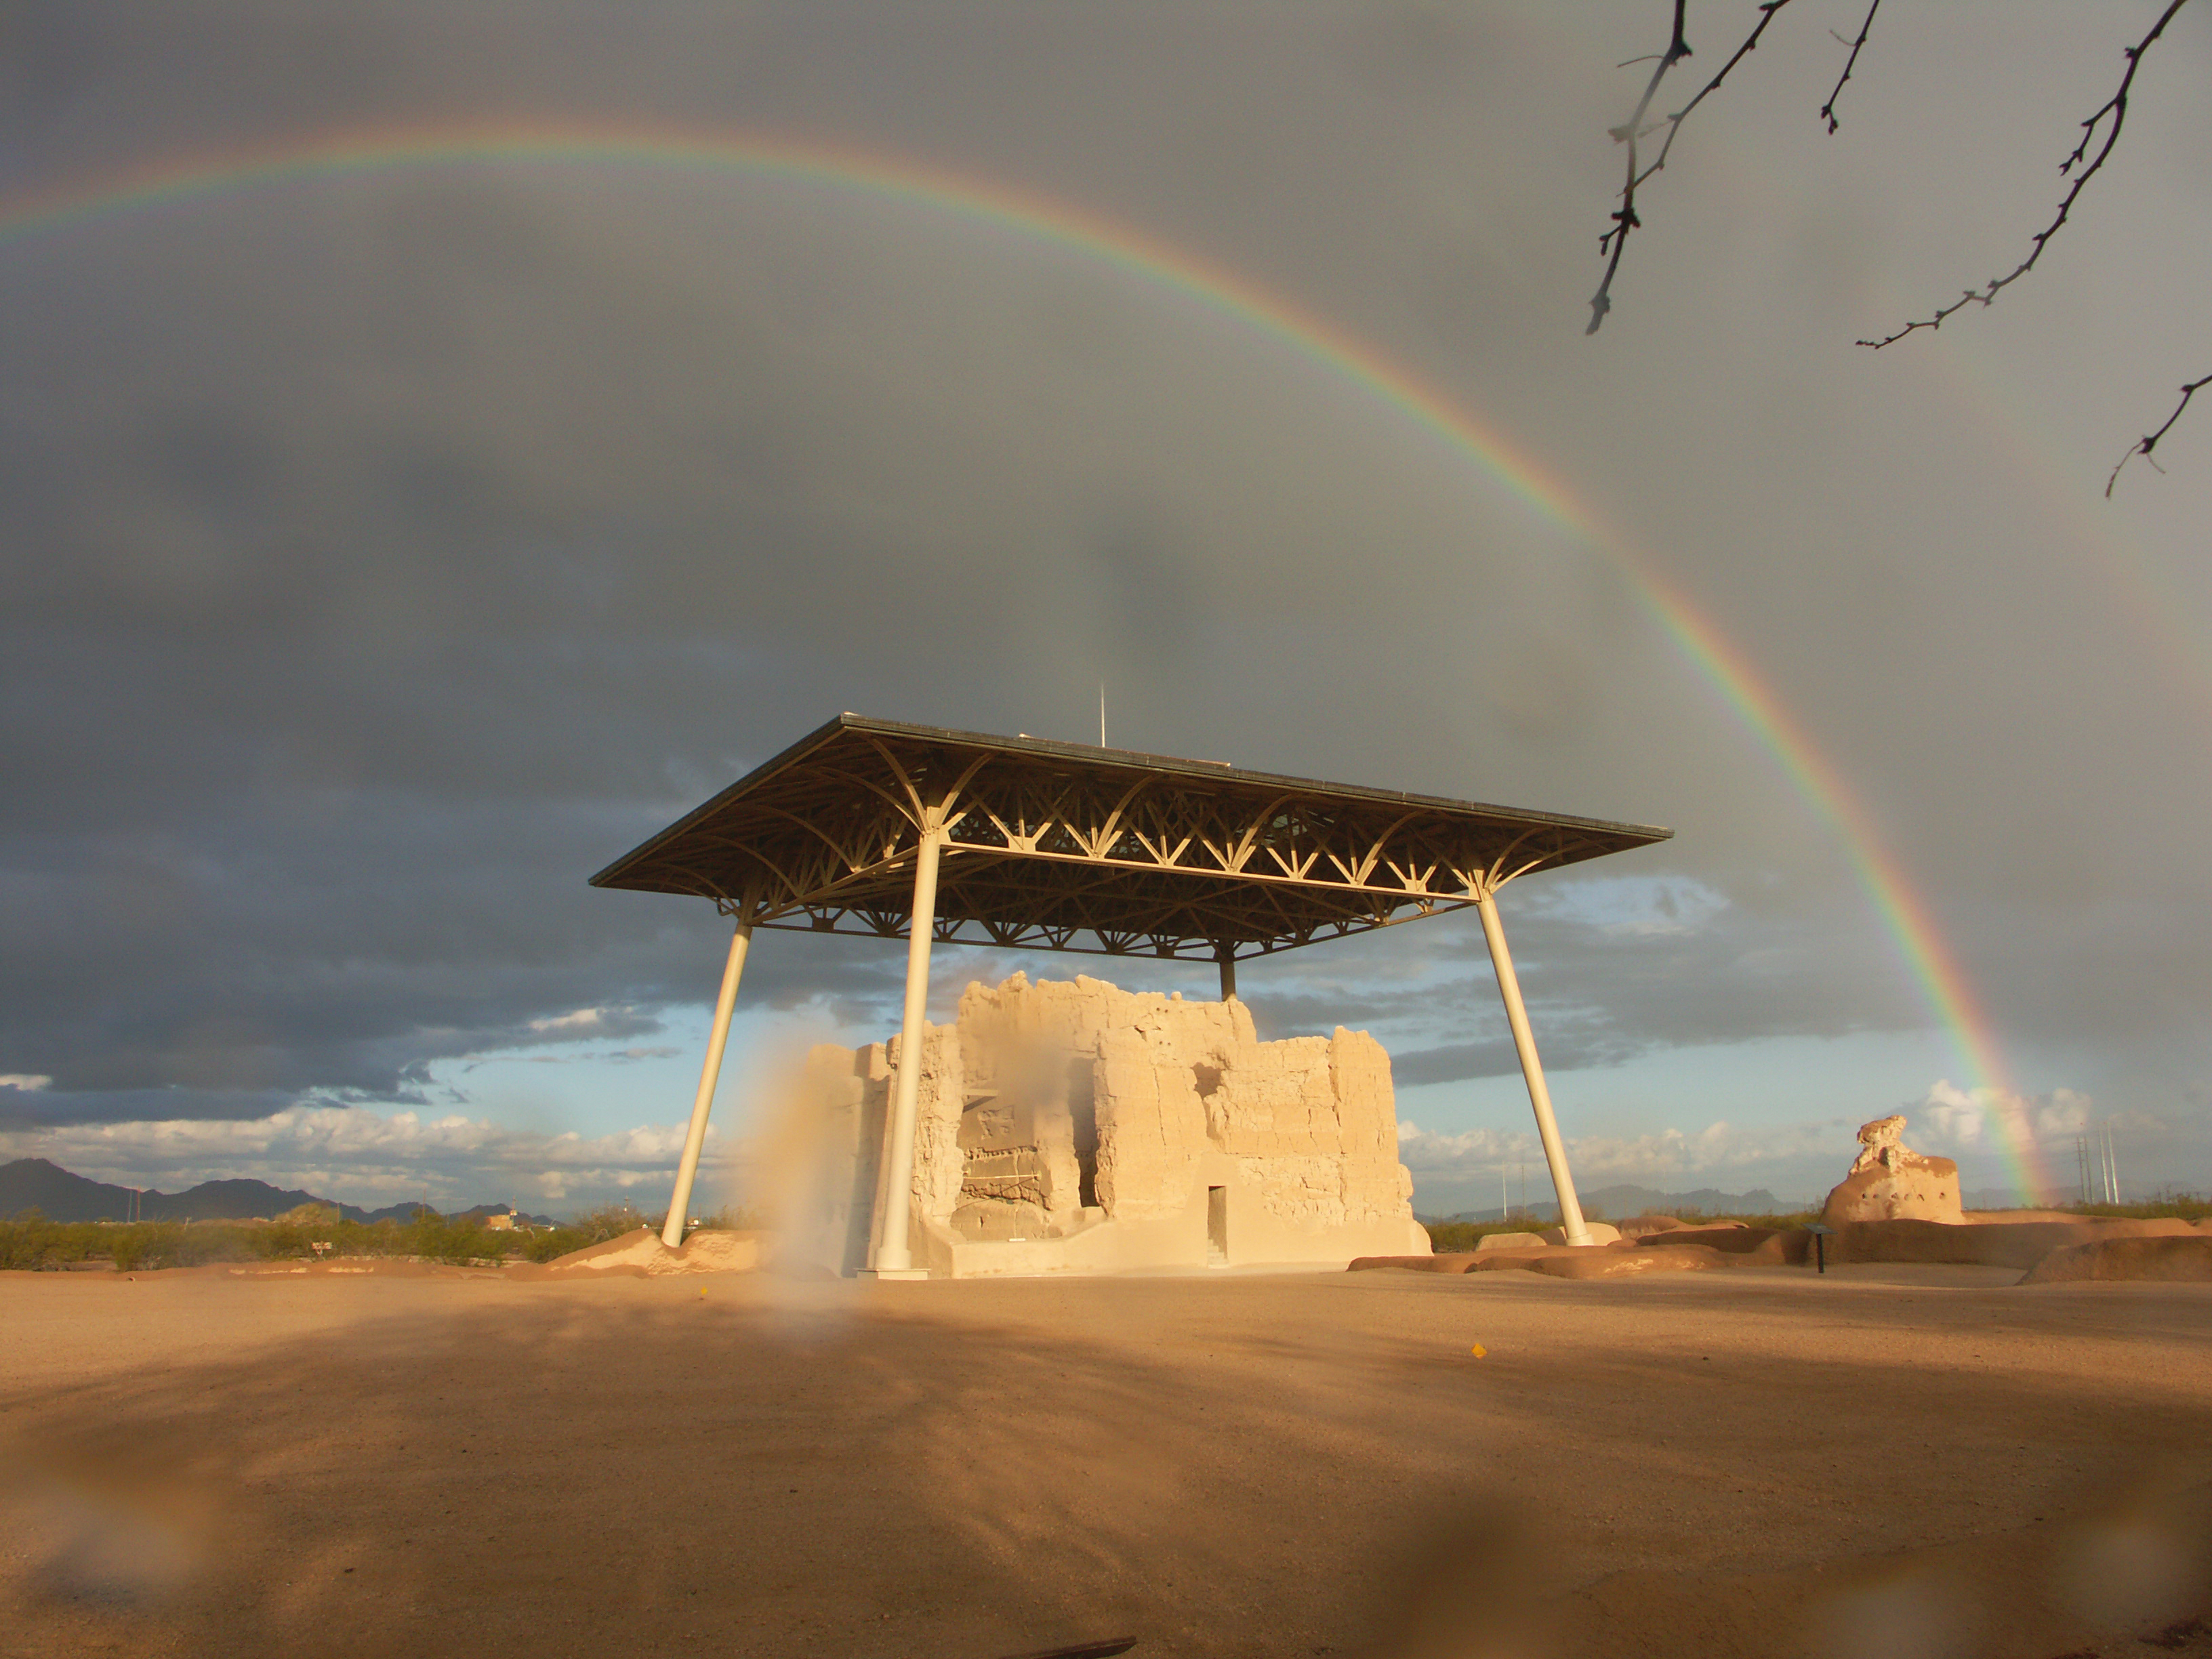 clearing skies reveal and double rainbow over the Casa Grande Great House